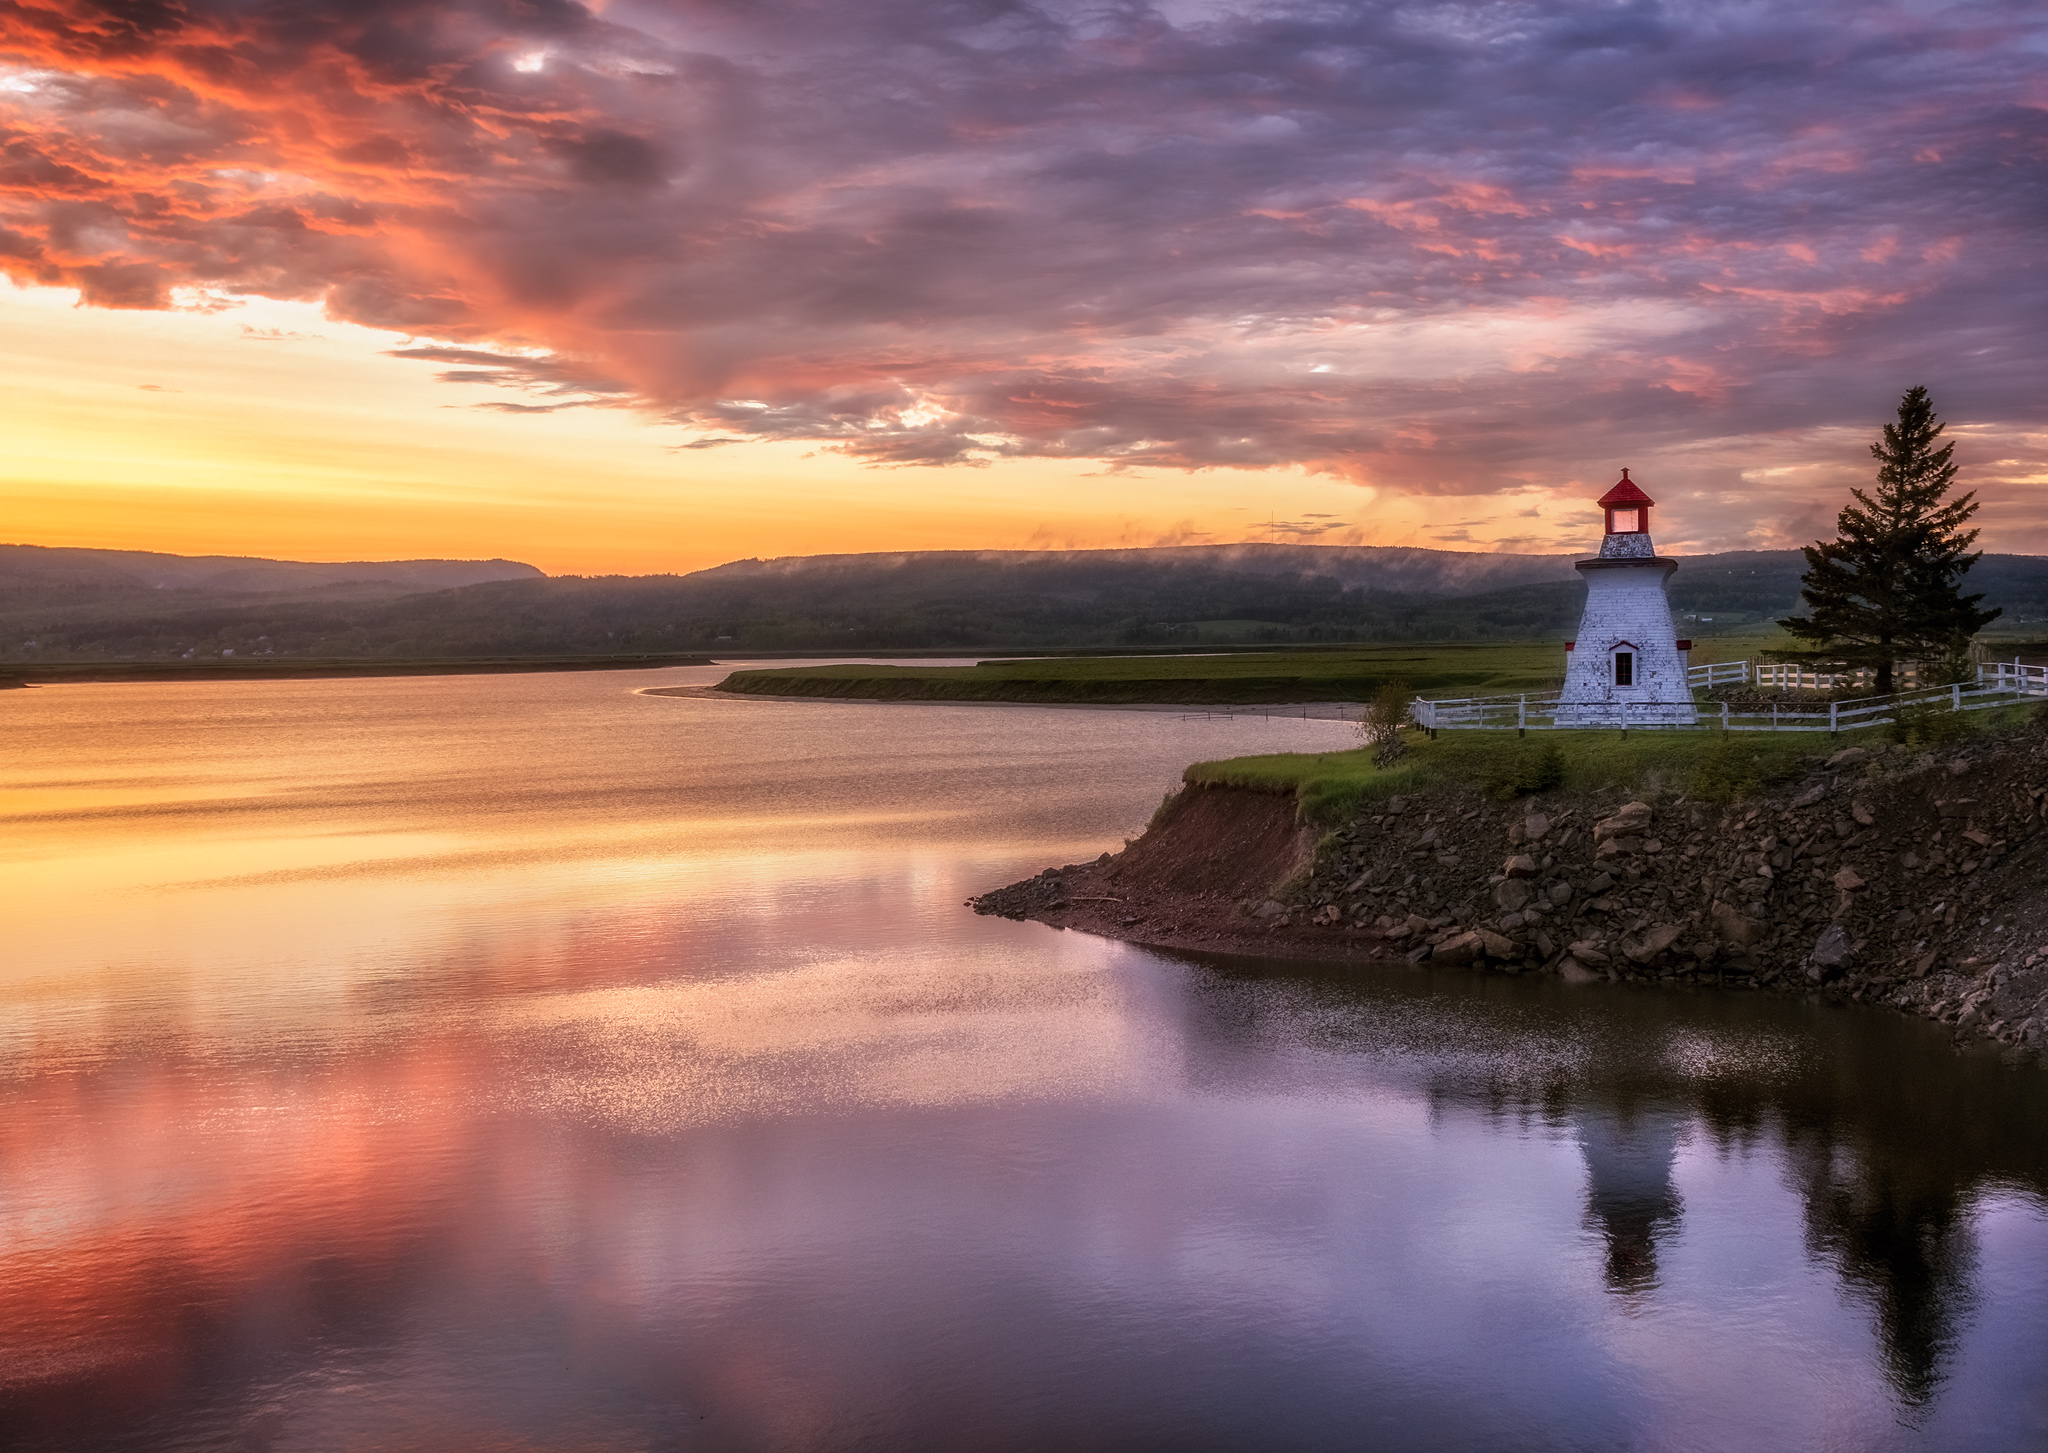 This beautiful sunset at my beloved Anderson Hollow Lighthouse was one of the images featured in the CBC New Brunswick article.